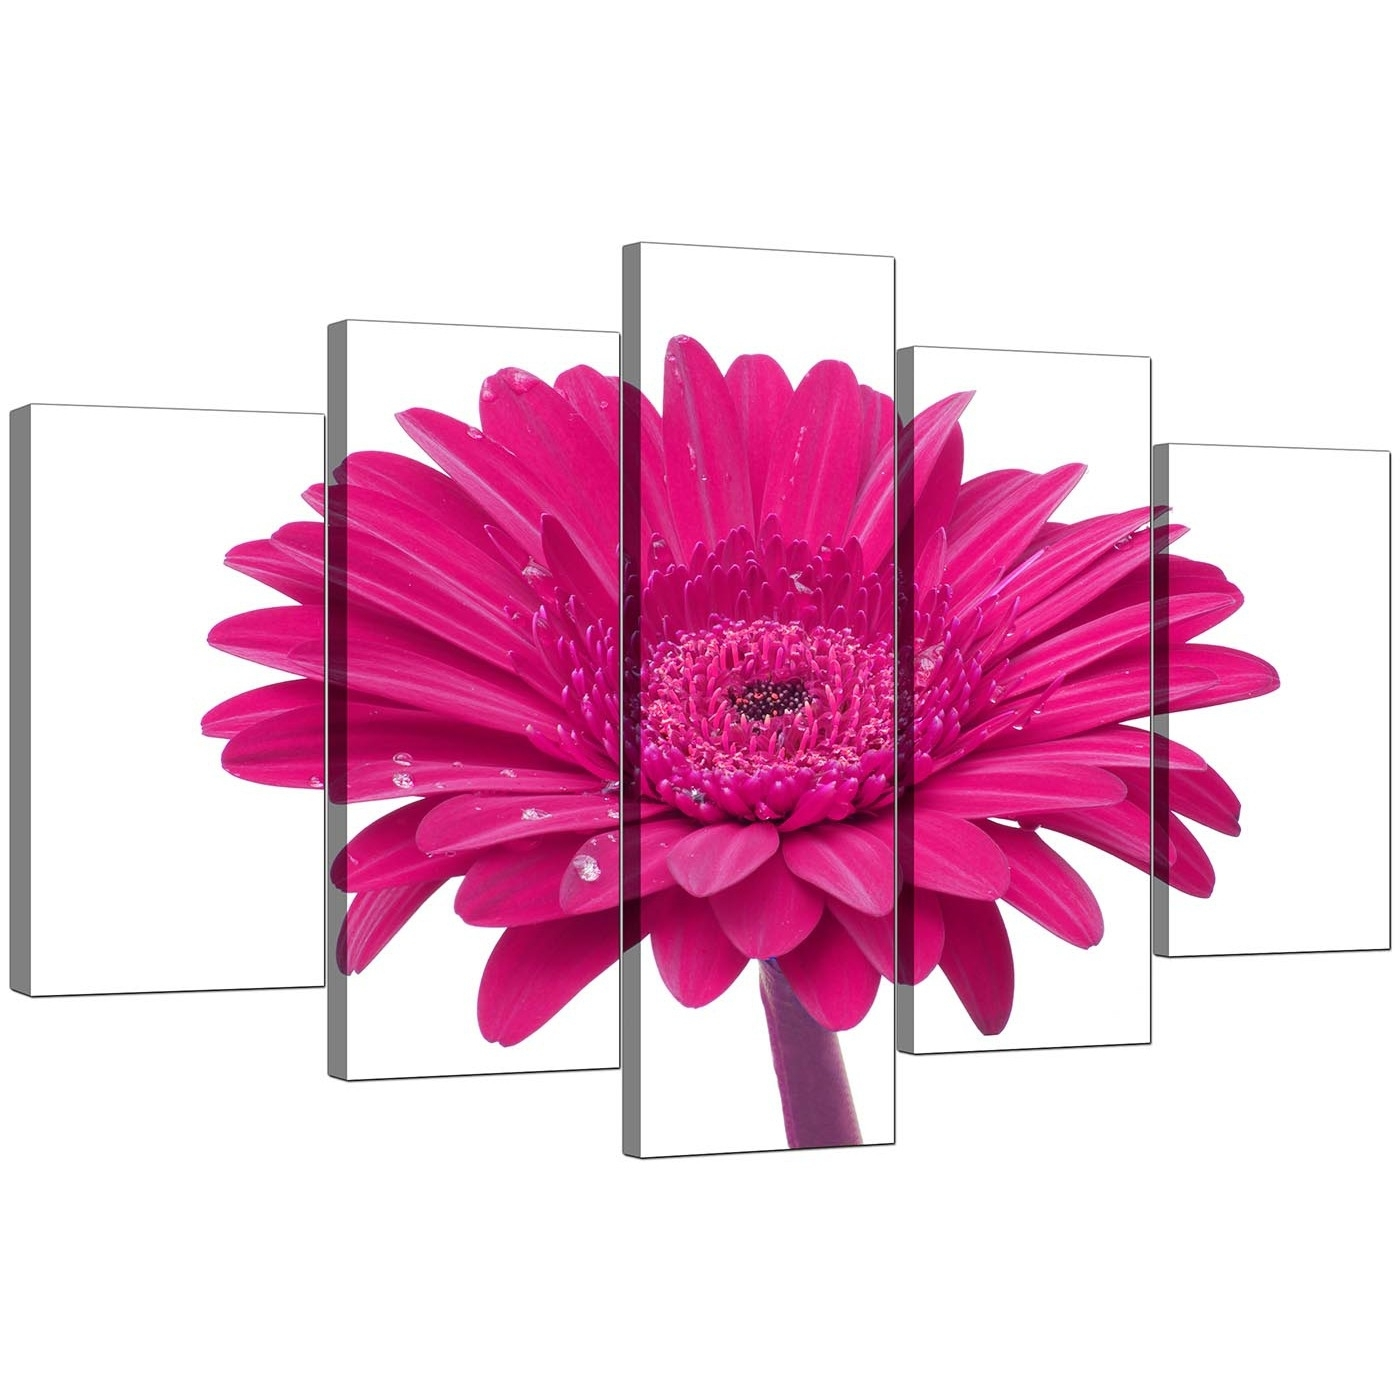 Extra Large Flower Canvas Wall Art 5 Piece In Pink in Pink Wall Art (Image 10 of 20)